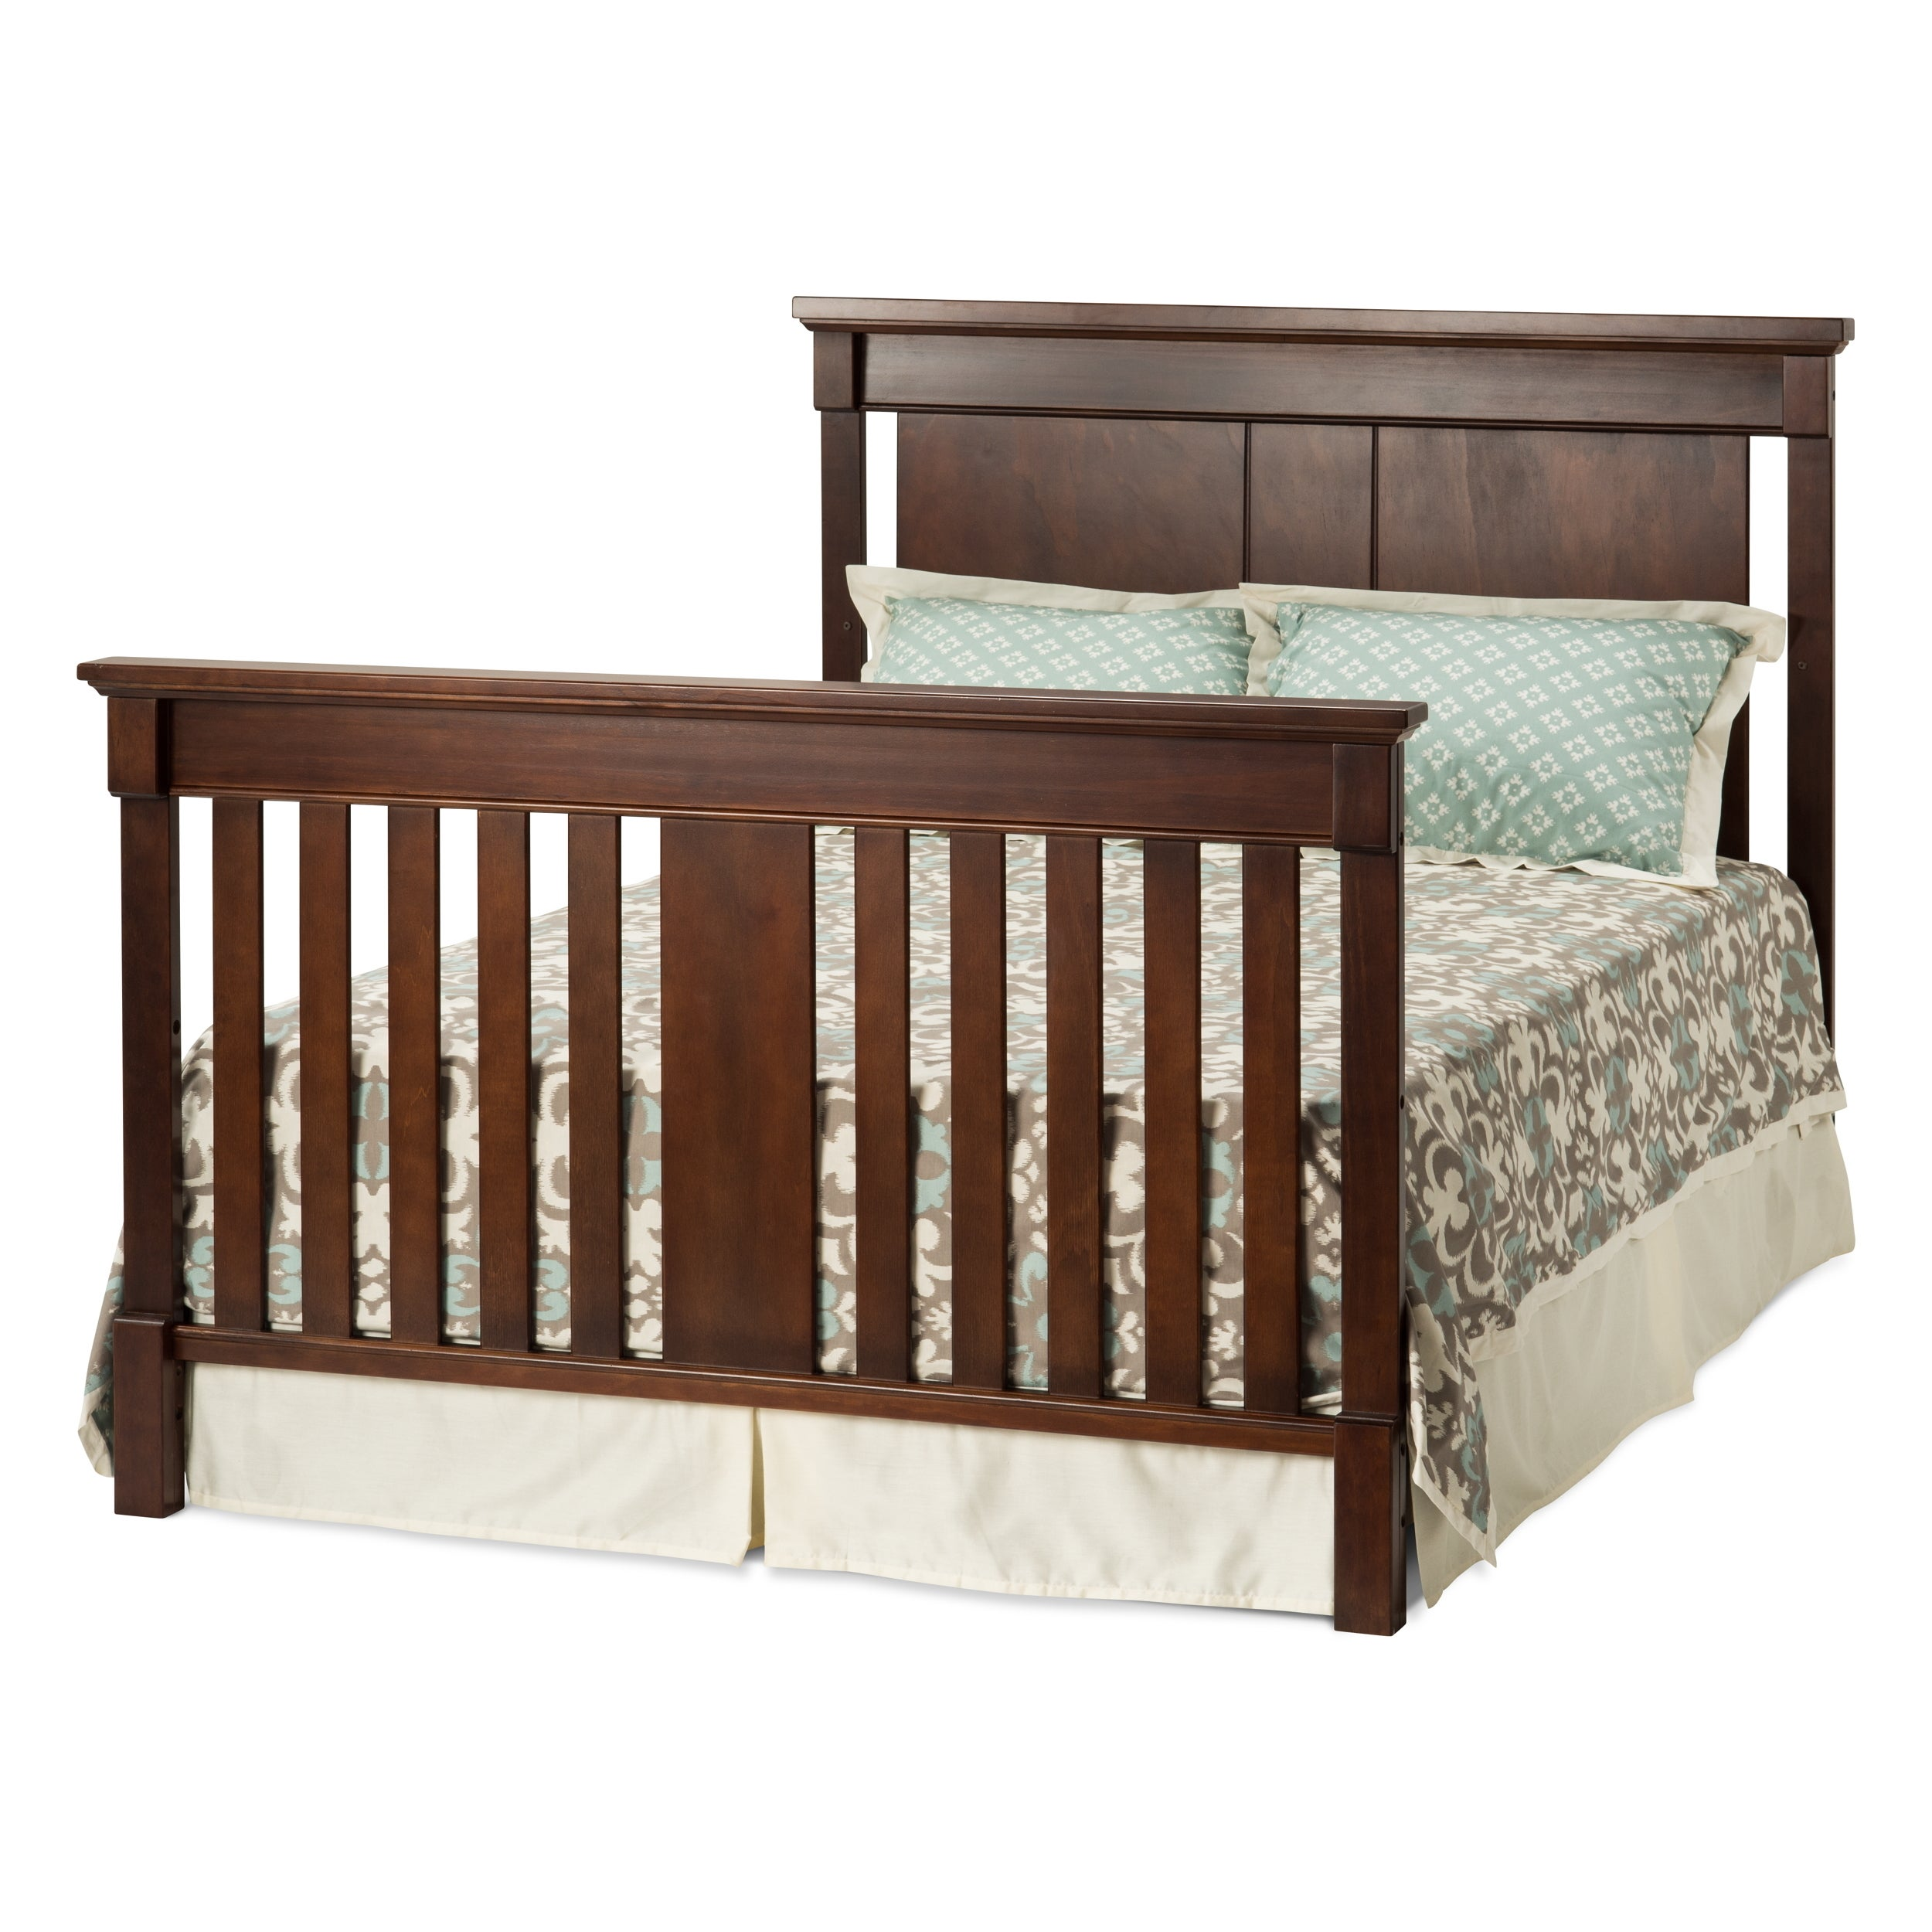 ideas london best cribs craft dimensions photos decors of standard child designs image cradle and mini crib vs